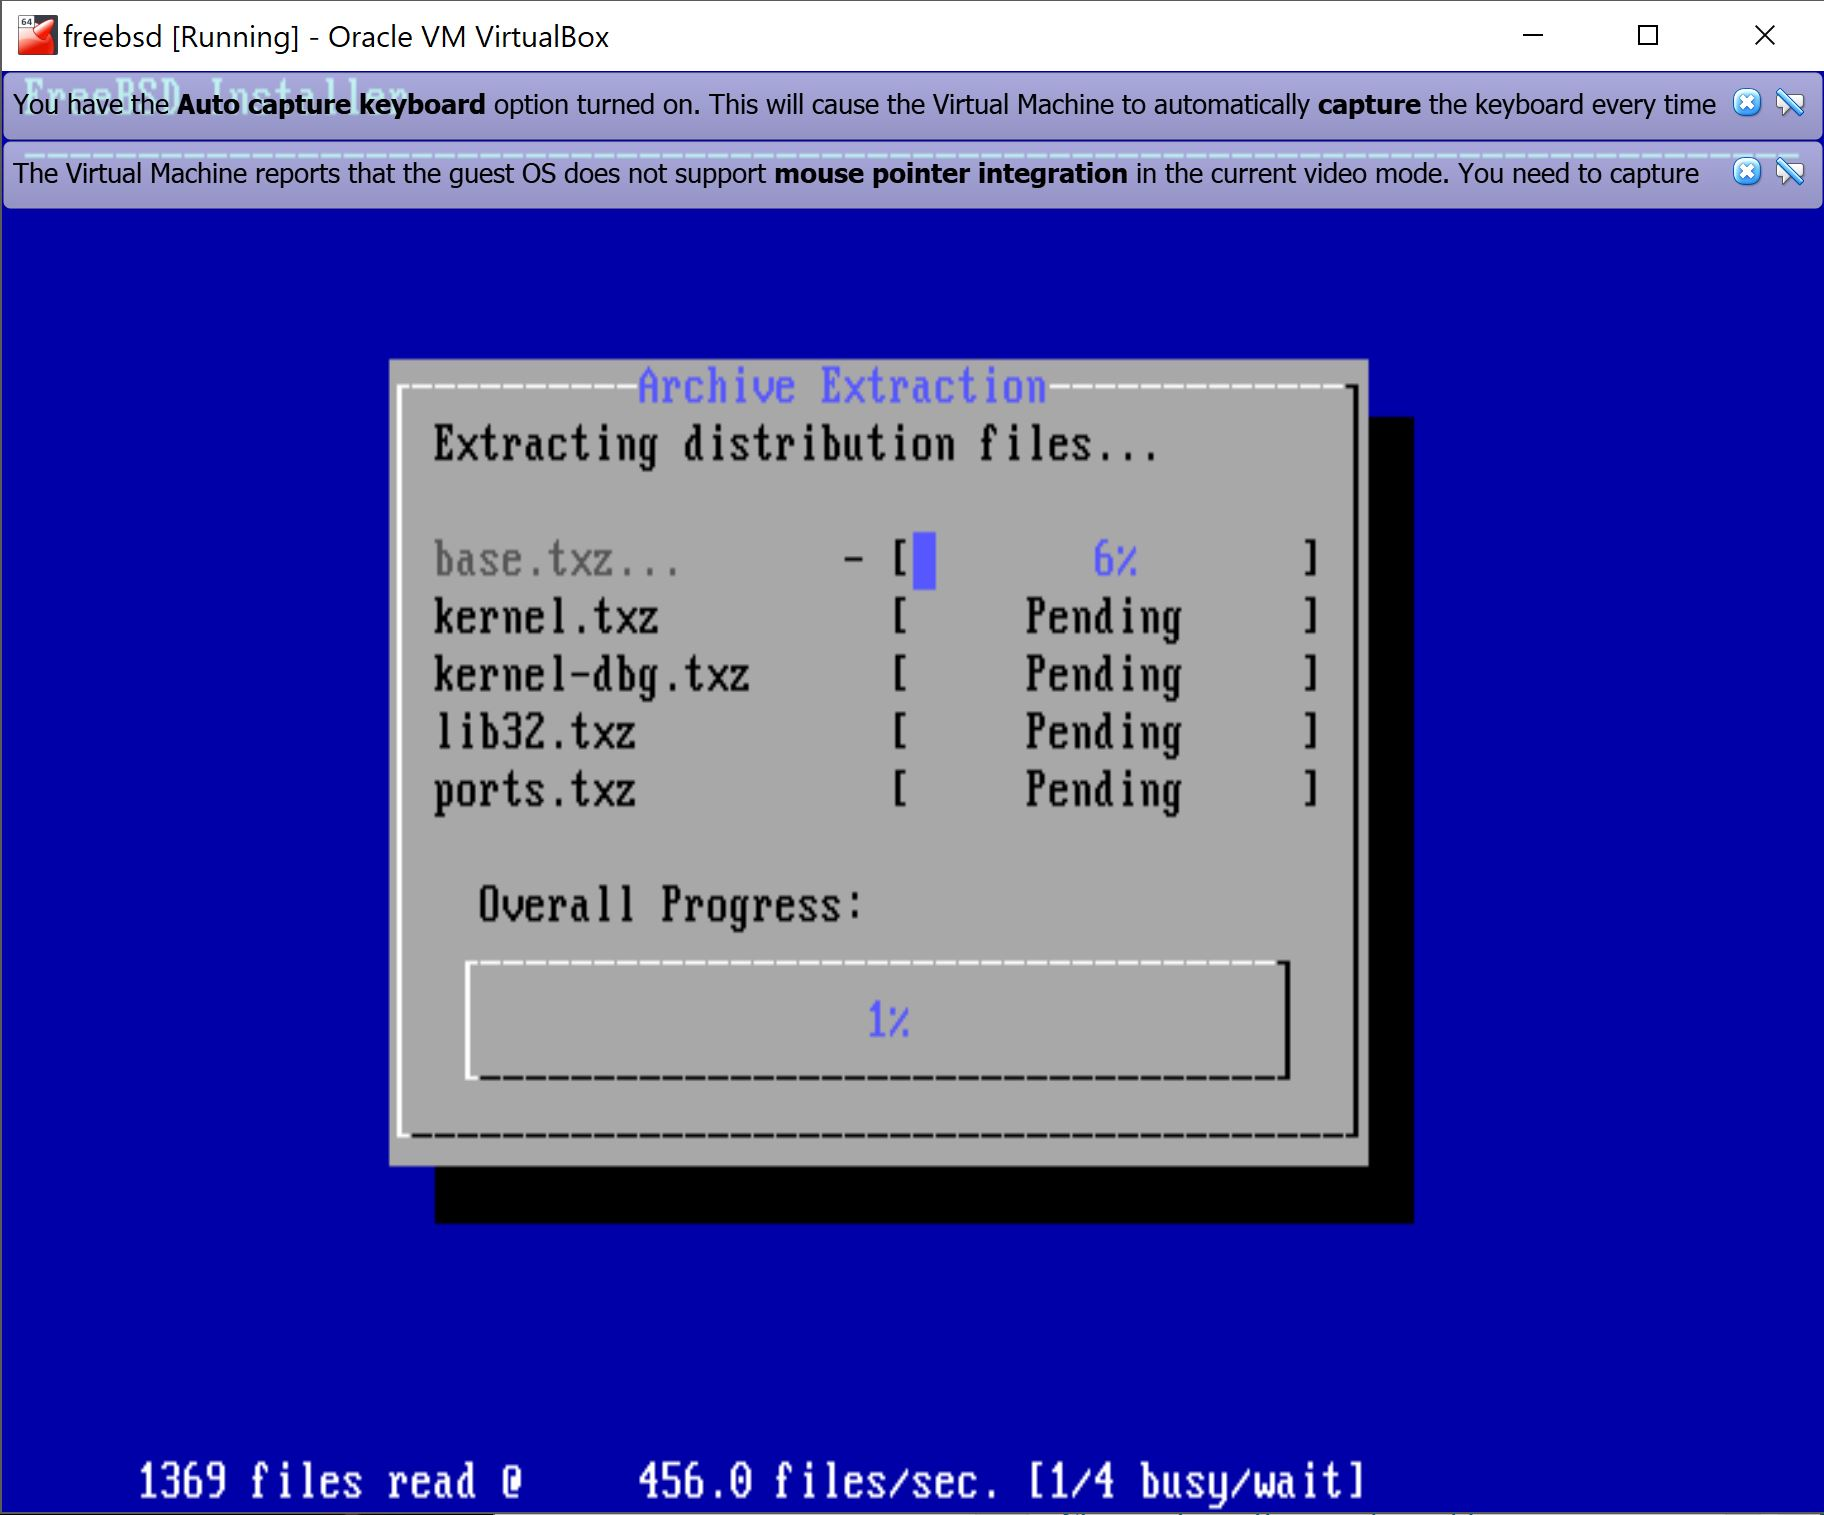 Windows 10, VirtualBox 5 2 0 w/ FreeBSD 12 0-CURRENT Guest